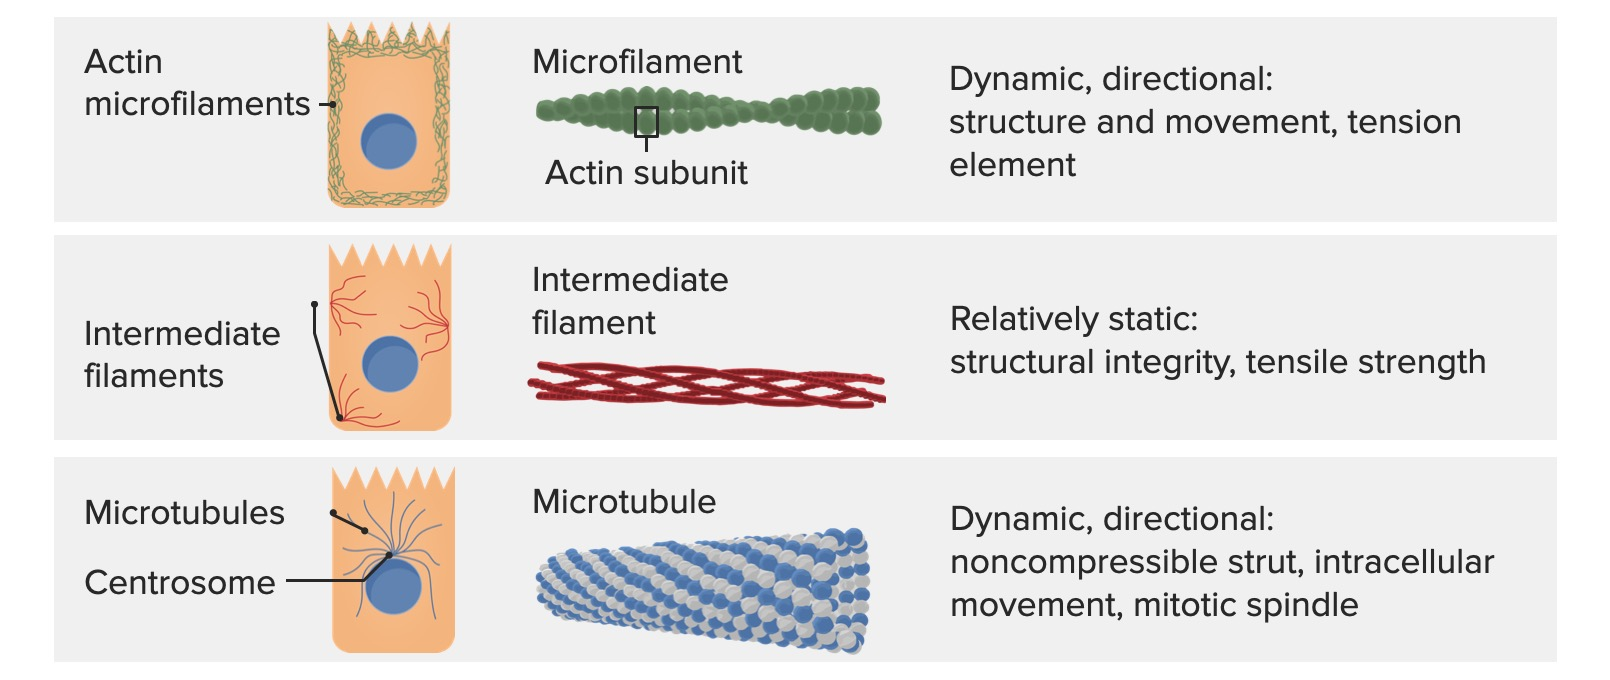 Fibers that comprise the cytoskeleton